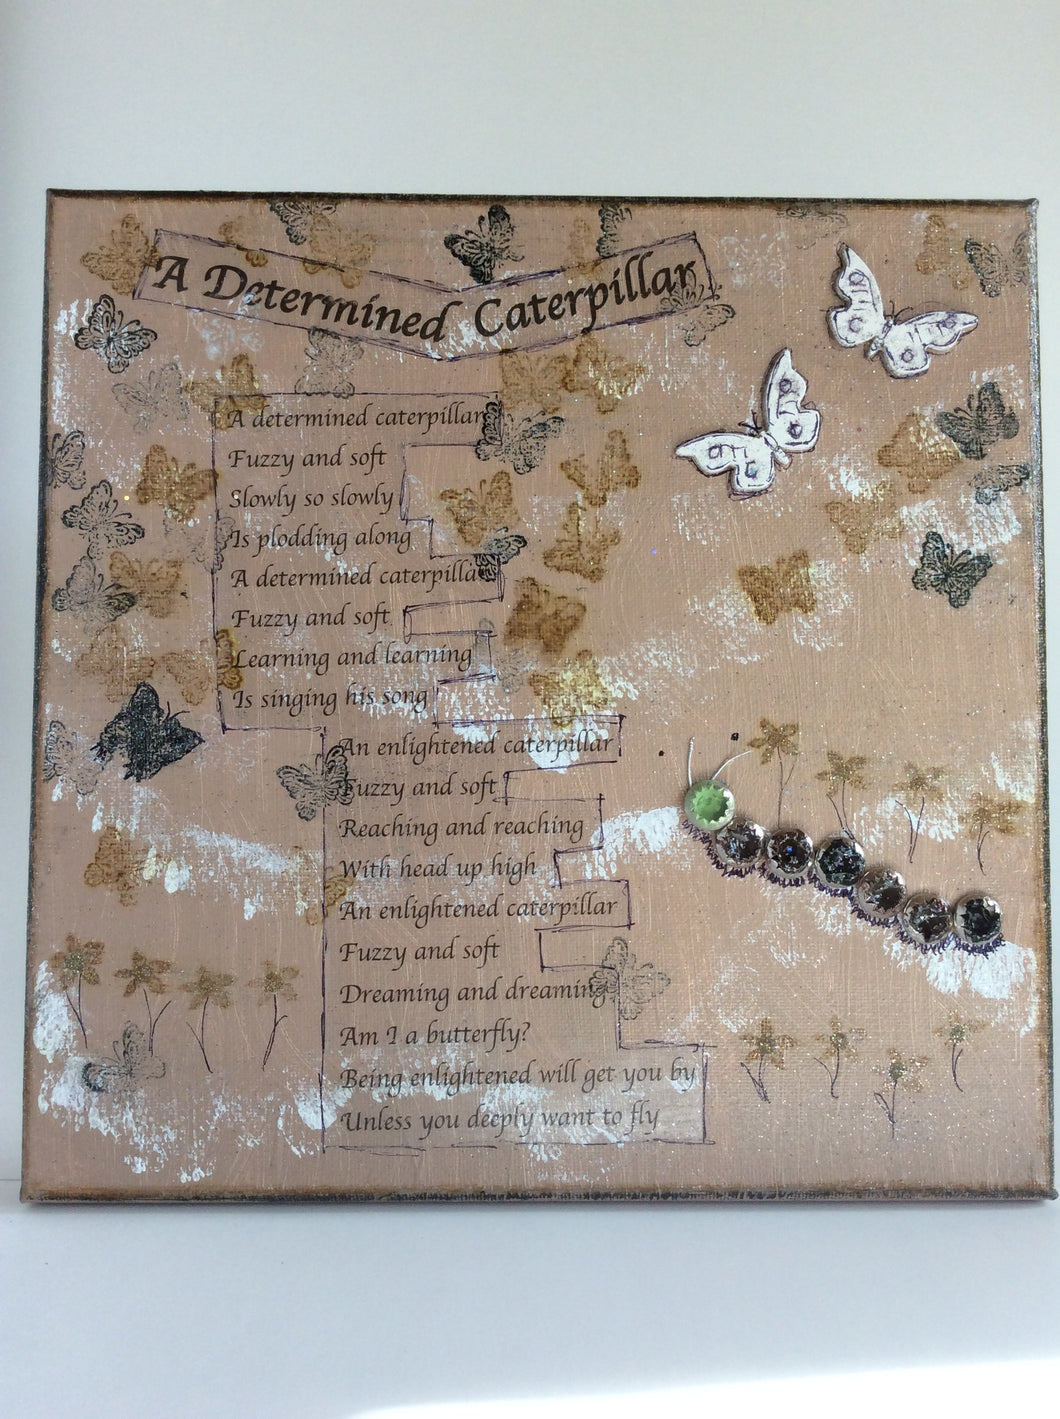 A Determined Caterpillar an original poem on canvas from poempieces.com in tan